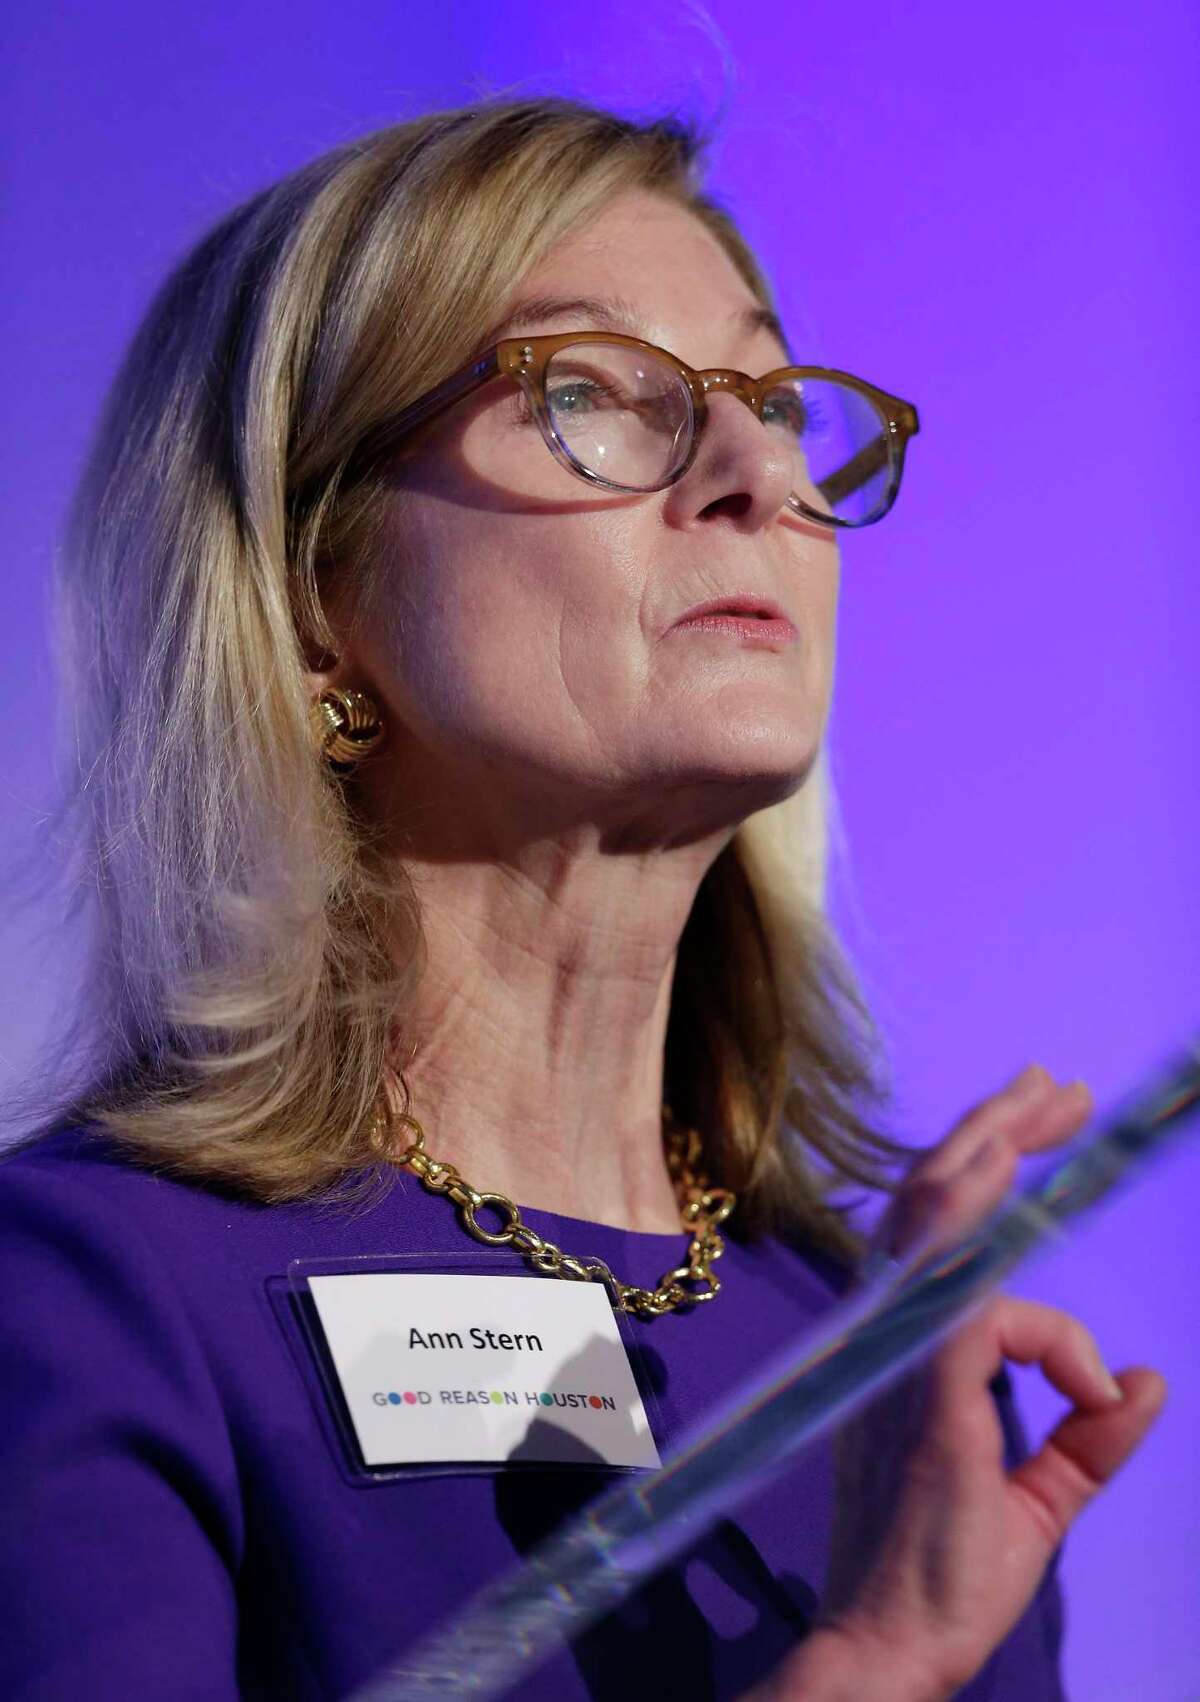 Ann Stern, board member of the non-profit Good Reason Houston, speaks at the organization's inaugural event at The Revaire Thursday, Mar. 7, 2019 in Houston, TX.